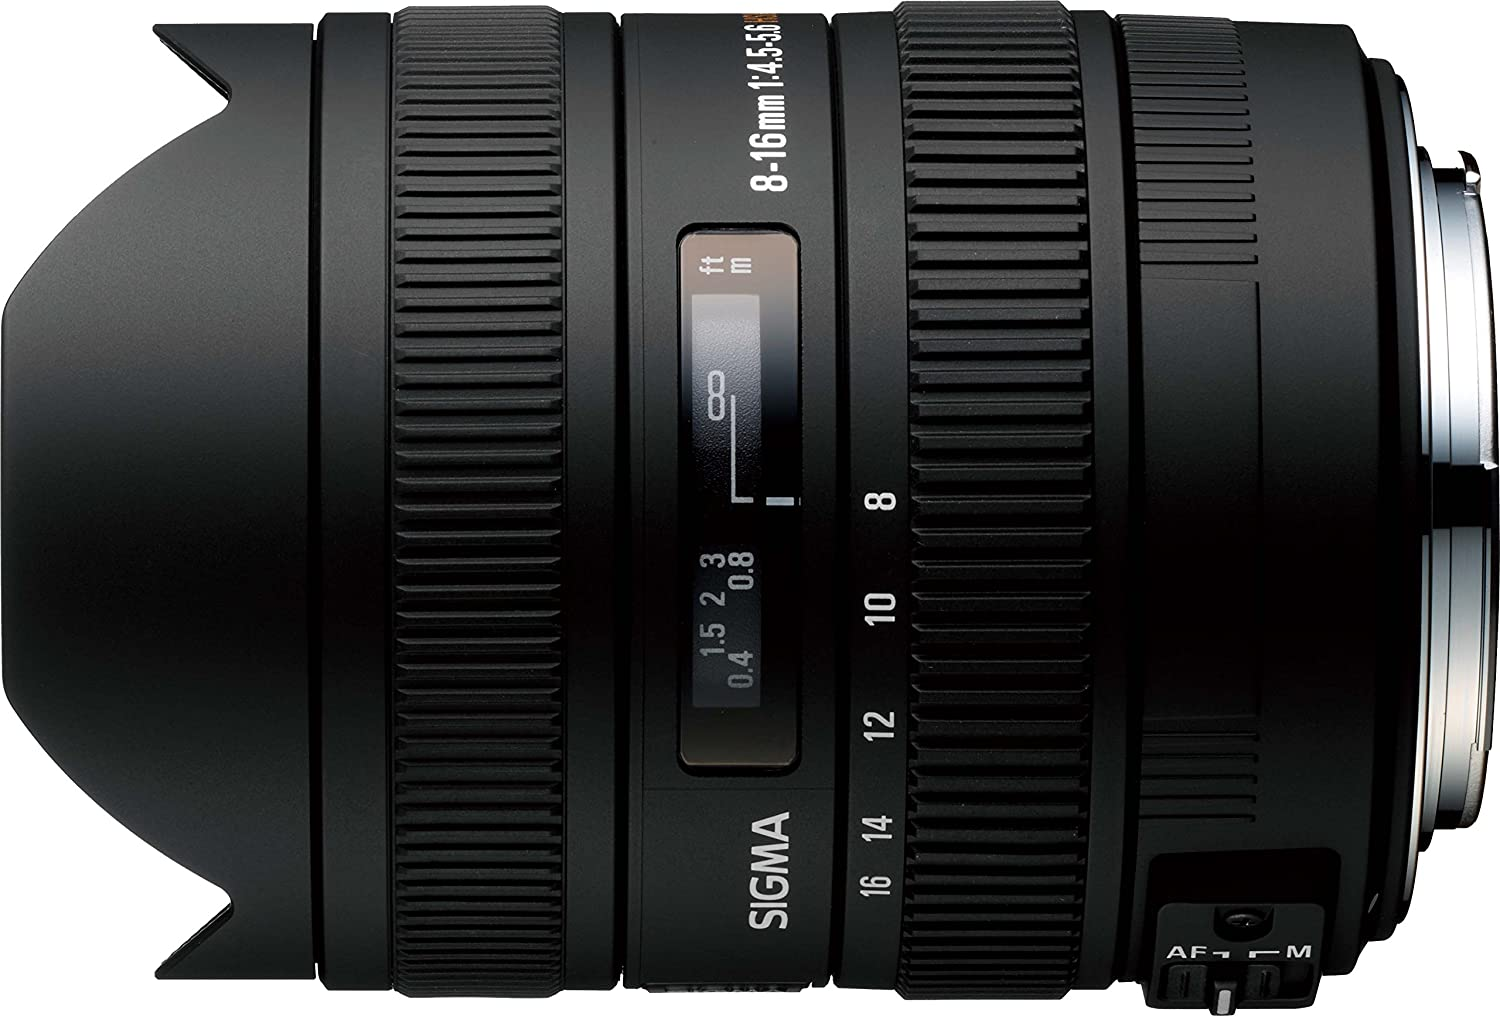 Sigma mm f DC CAF Objetivo para Canon distancia focal mm apertura